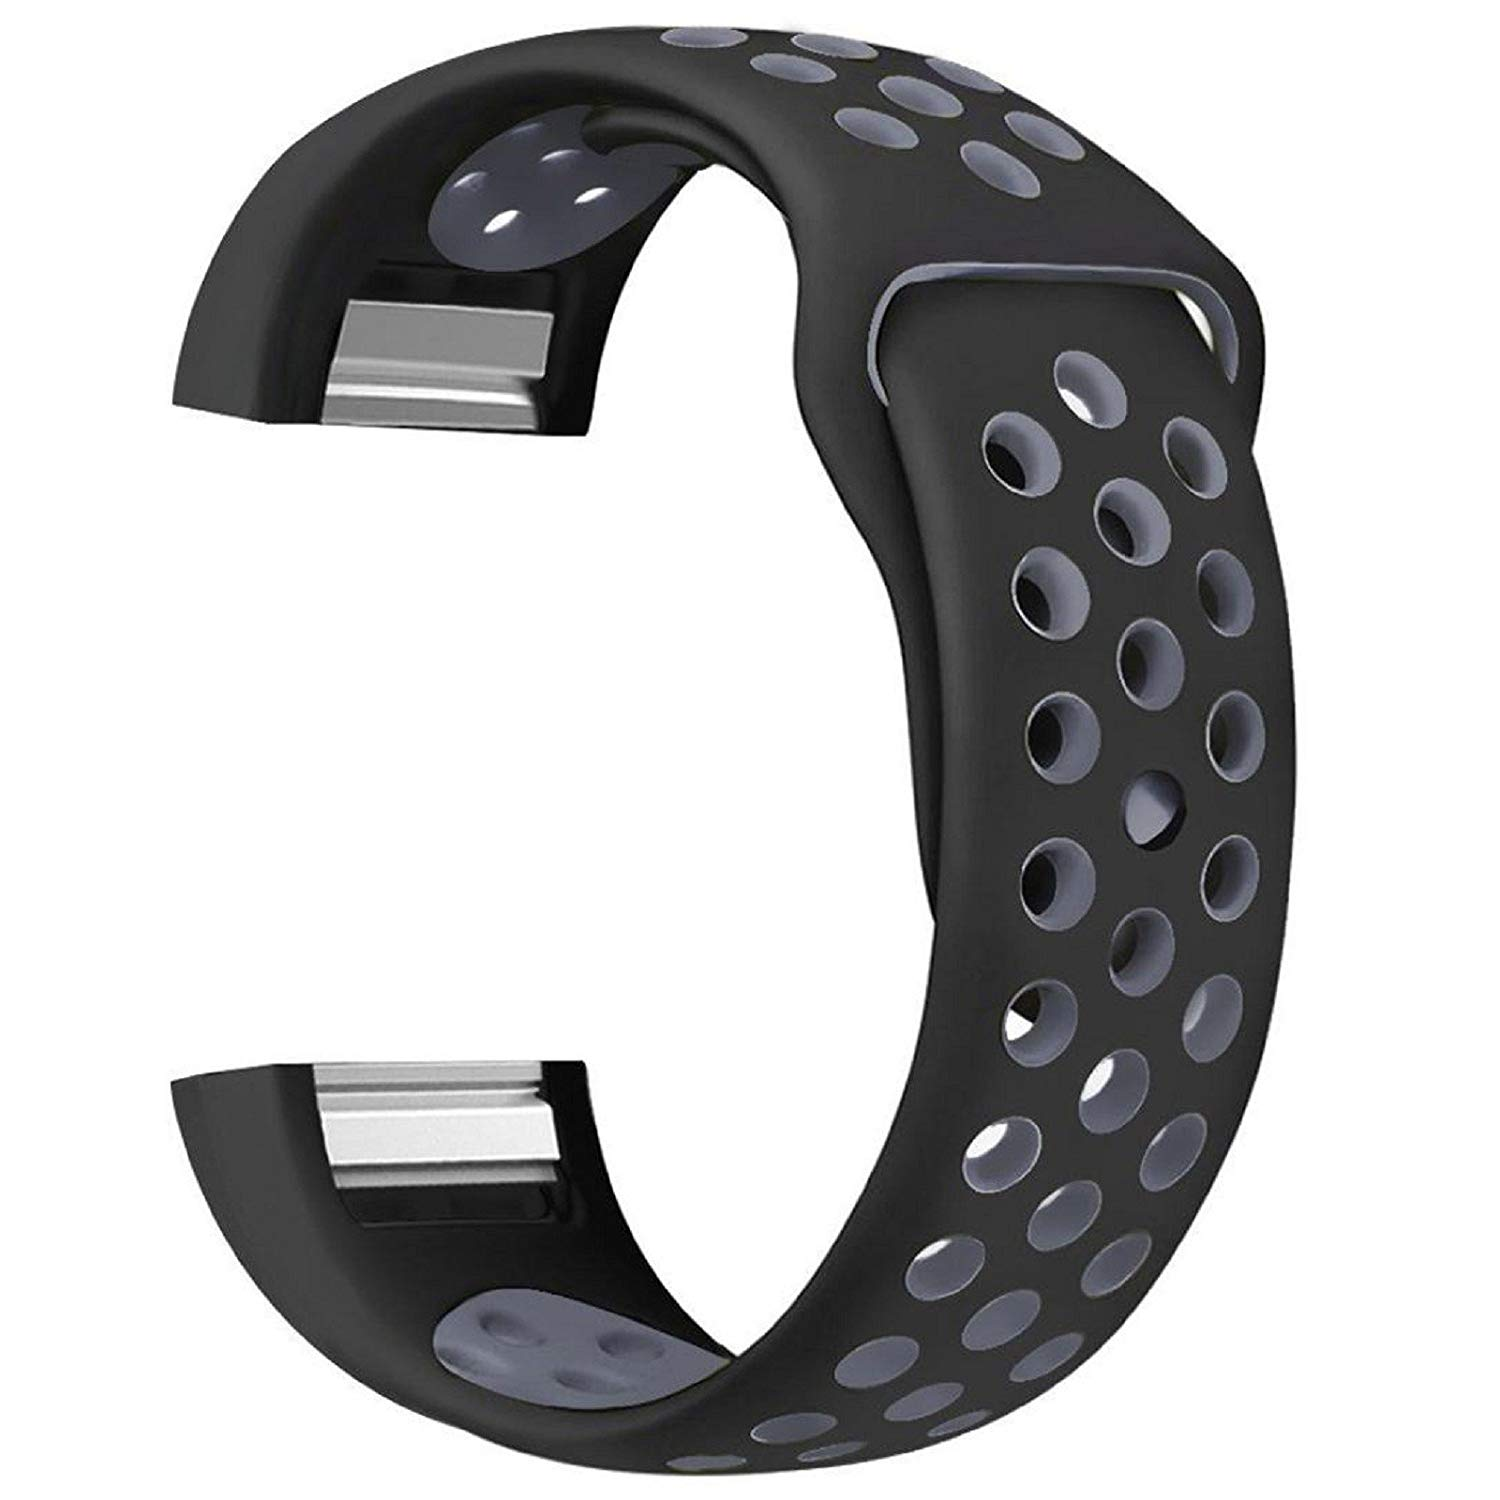 """Owill Small Size Fashion Sports Silicone Bracelet Strap Wrist Band For Fitbit Charge 2, Applicable Wrist: About 5.9""""-7.8"""" (150mm-200mm) (Gray)"""